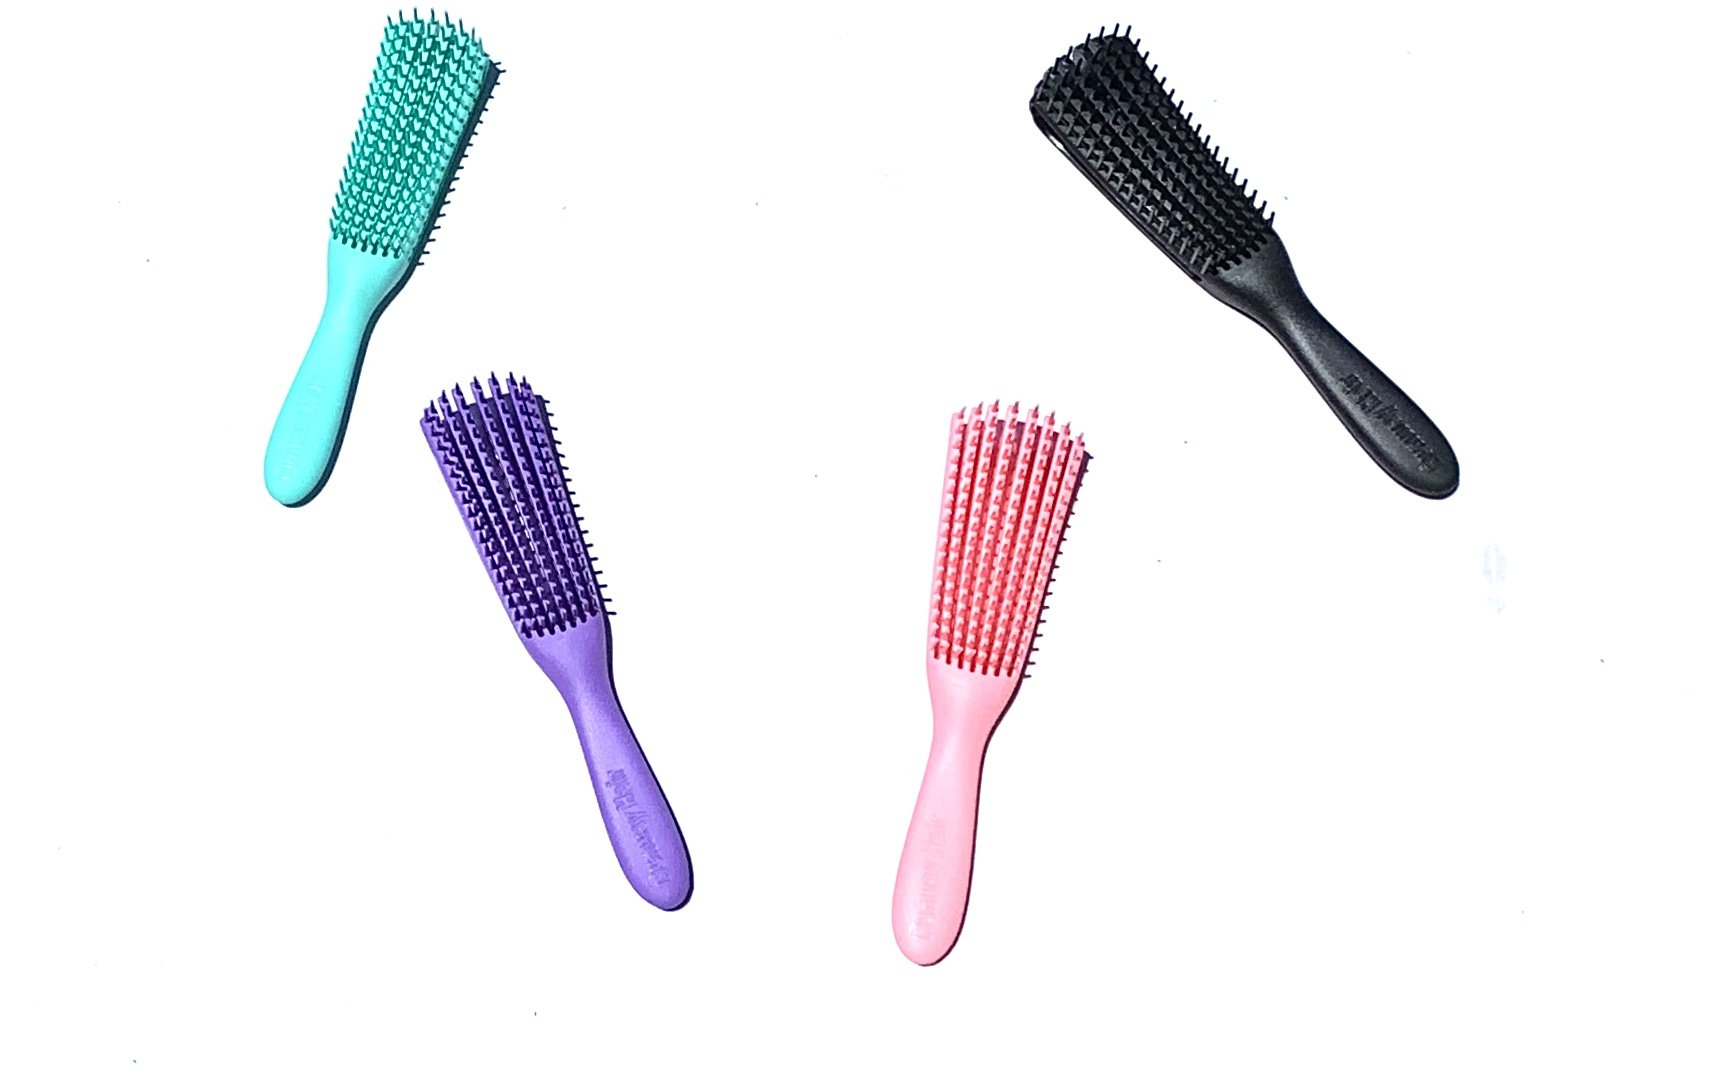 Runway Hair Curly Detangling Brush